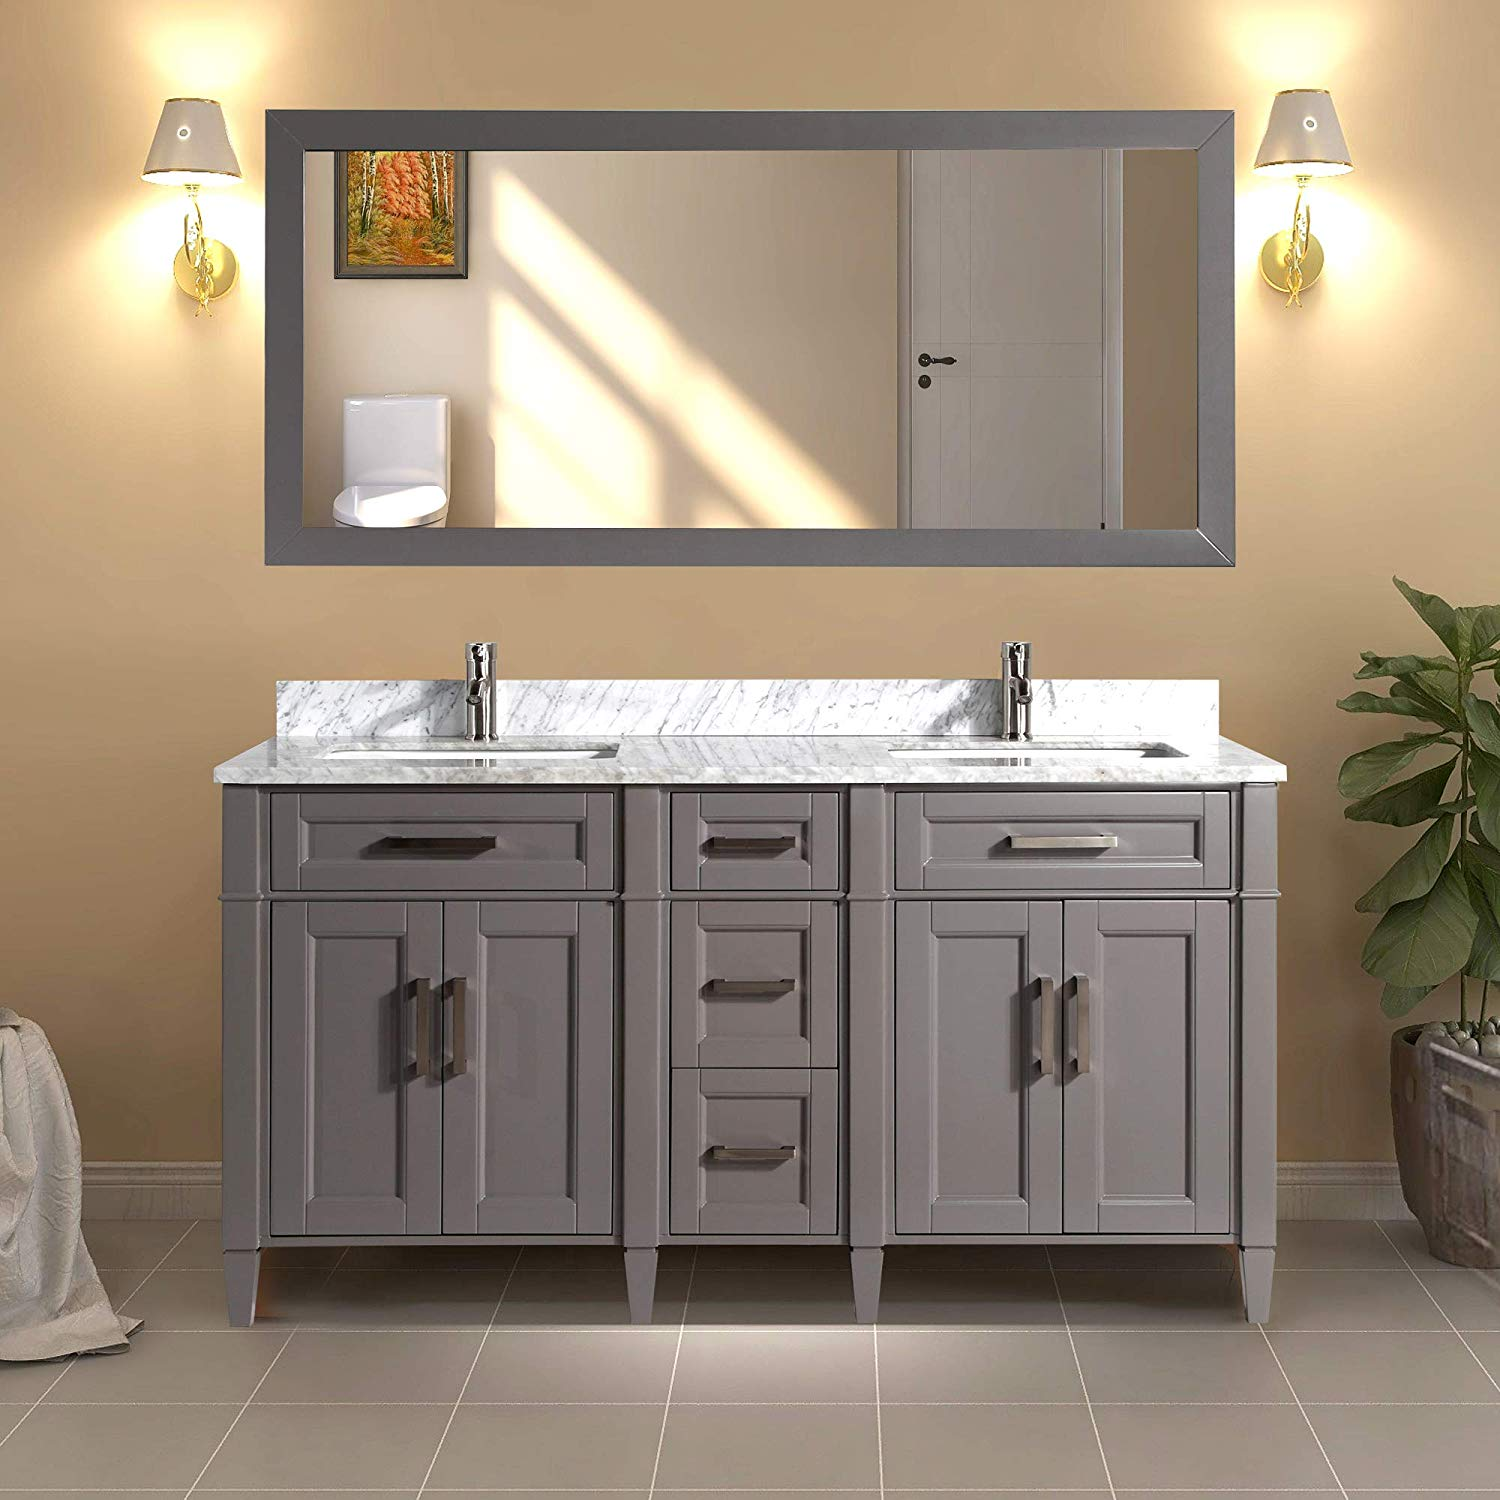 Vanity Art 60 Double Sink Bathroom Vanity Combo Set 5 Drawers 2 Shelves Carrara Marble Stone Top Under Sink Cabinet With Mirror Walmart Com Walmart Com